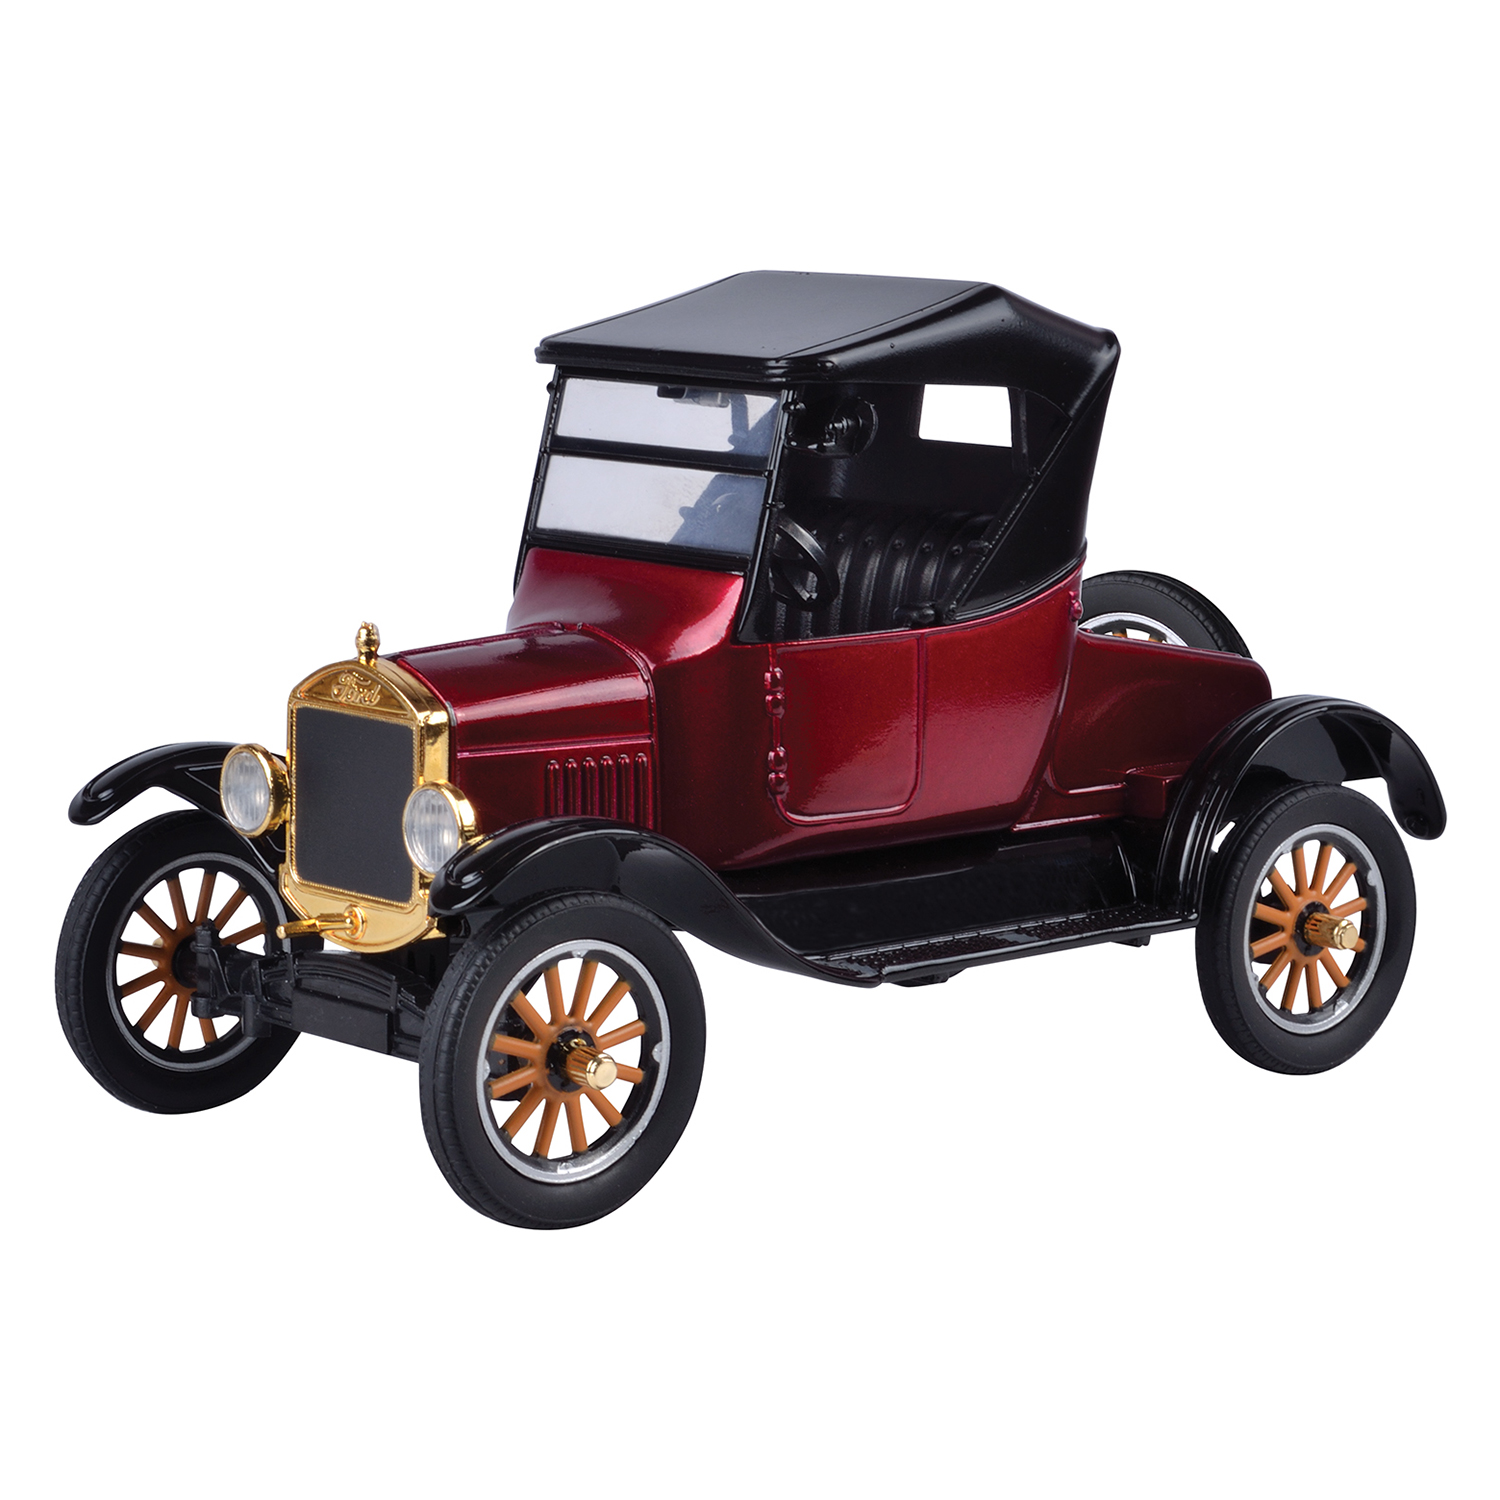 motormax ford model 1925 t-runabout 1:24